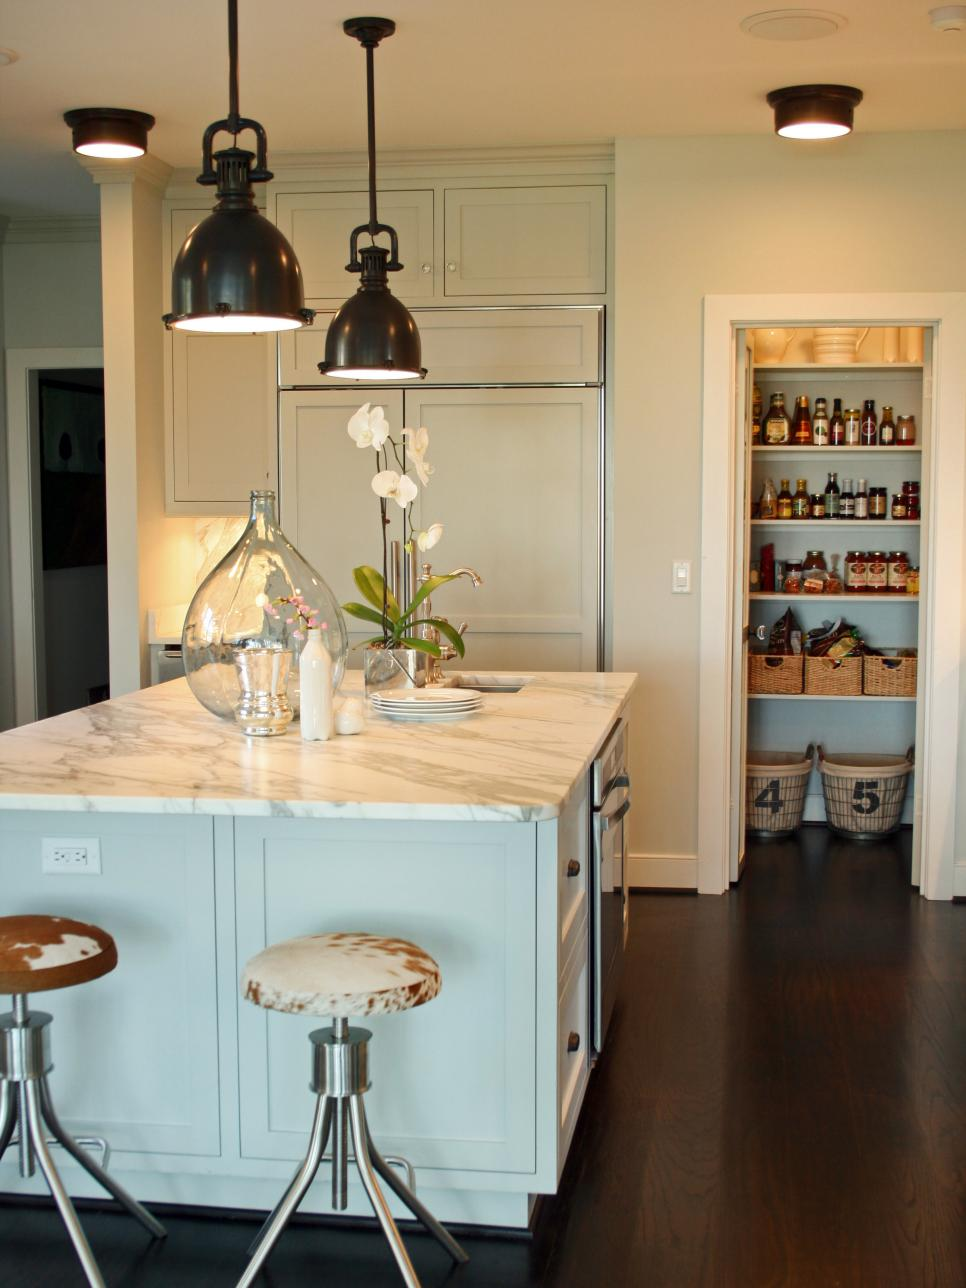 dp_joel-snayd-white-country-kitchen-island_s3x4-jpg-rend-hgtvcom-966-1288